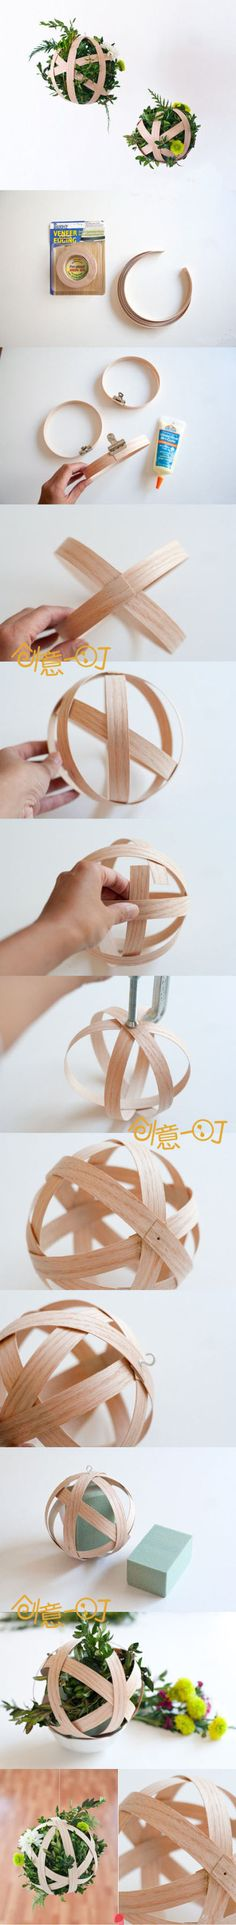 Vaneer Edging (and wood glue)  Fantastic idea for the woven globes!